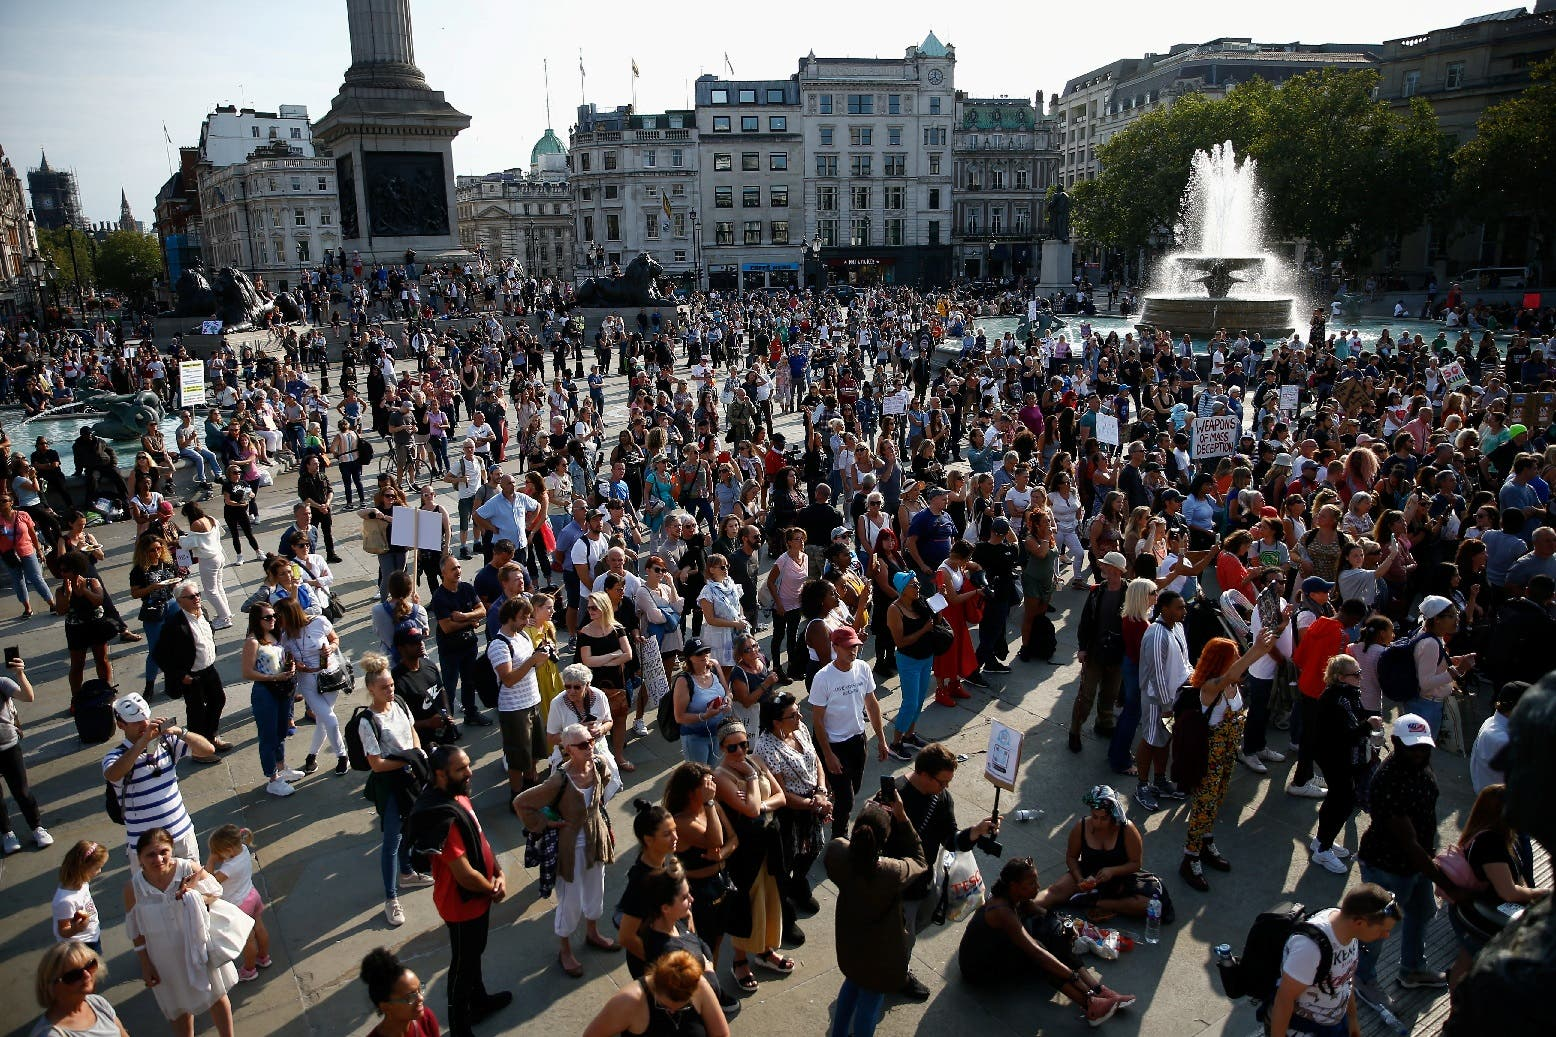 People gather in Trafalgar Square to protest against the lockdown imposed by the government, following the outbreak of the coronavirus, in London, Britain, September 19, 2020. (Reuters)